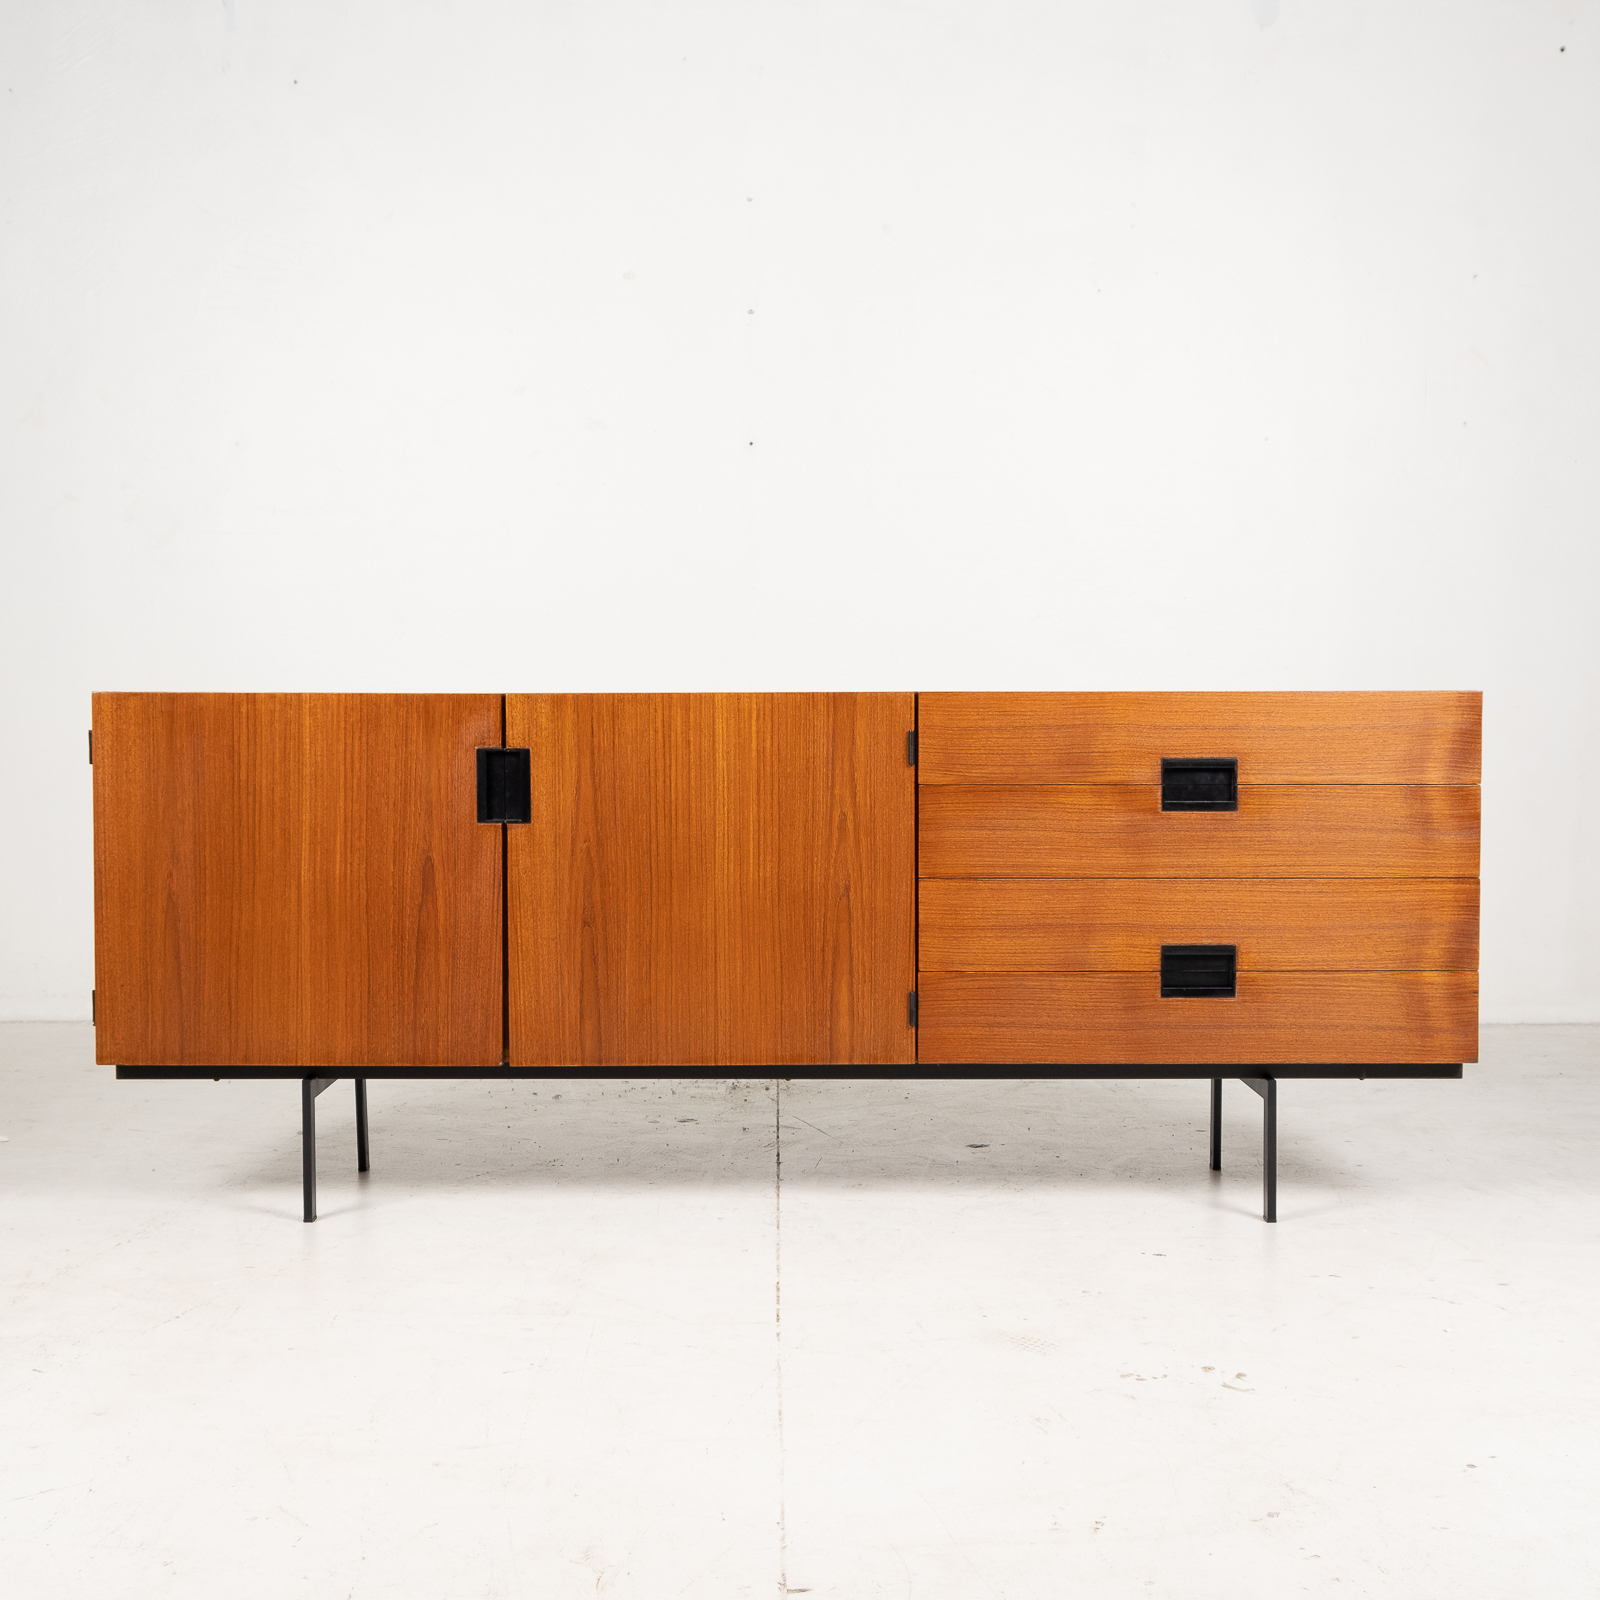 Du04 Japanese Series Sideboard By Cees Braakman For Pastoe, 1950s, The Netherlands1